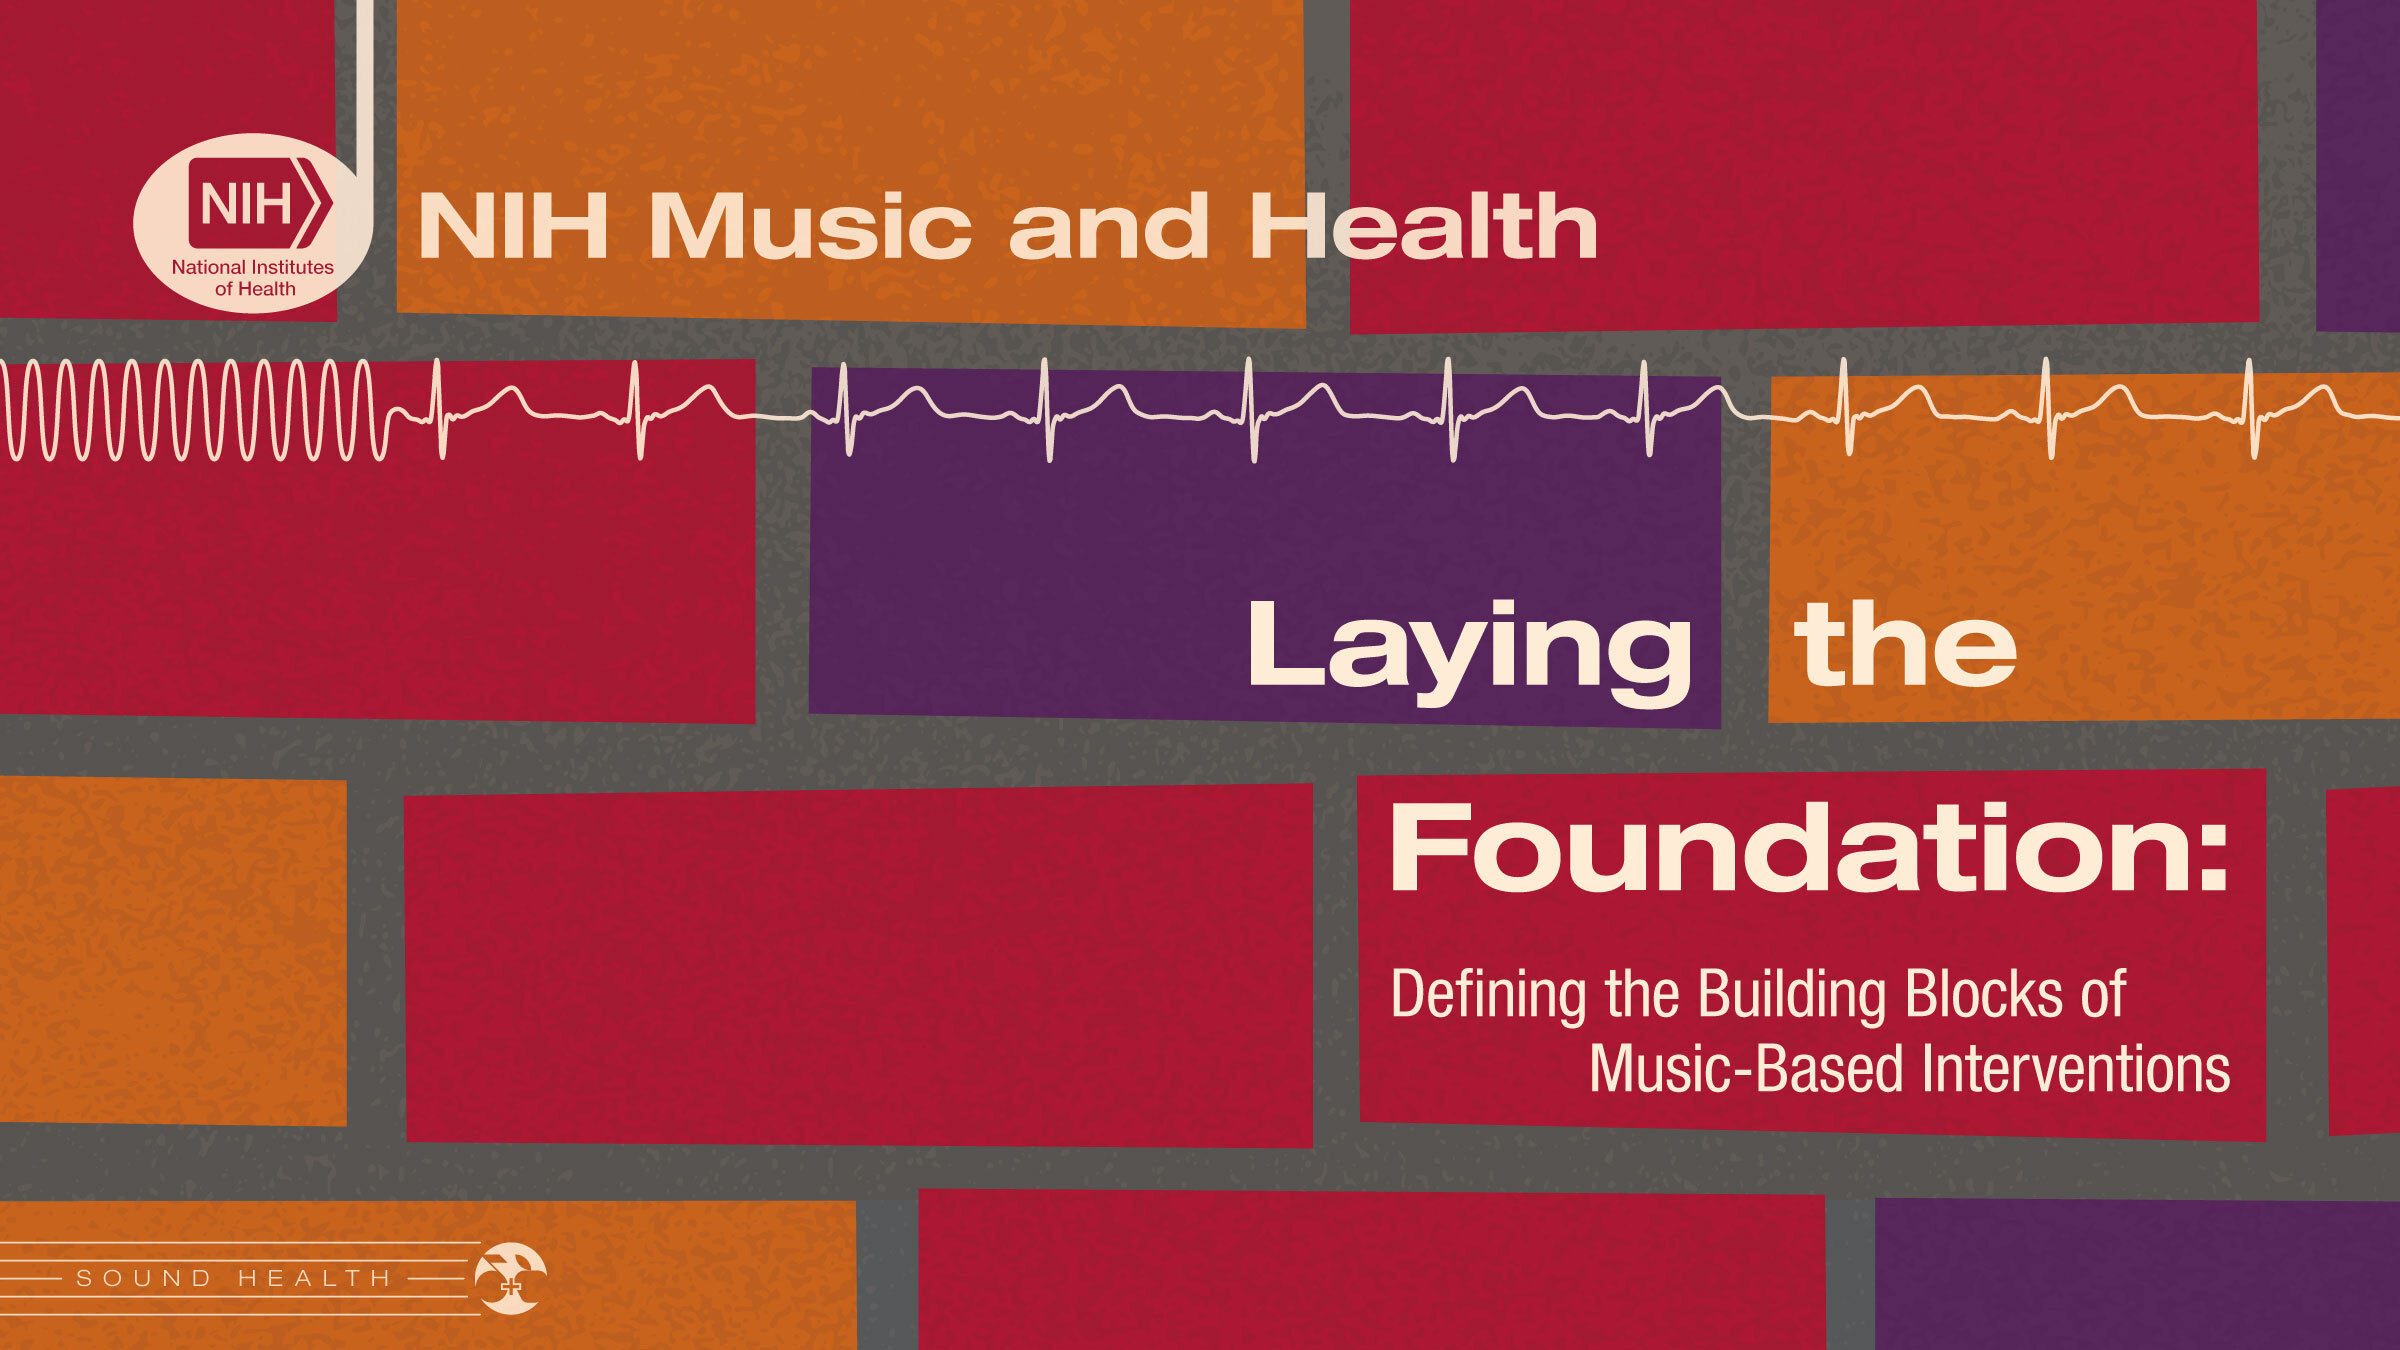 NIH Meeting Series: Laying the Foundation: Defining the Building Blocks of Music-Based Interventions